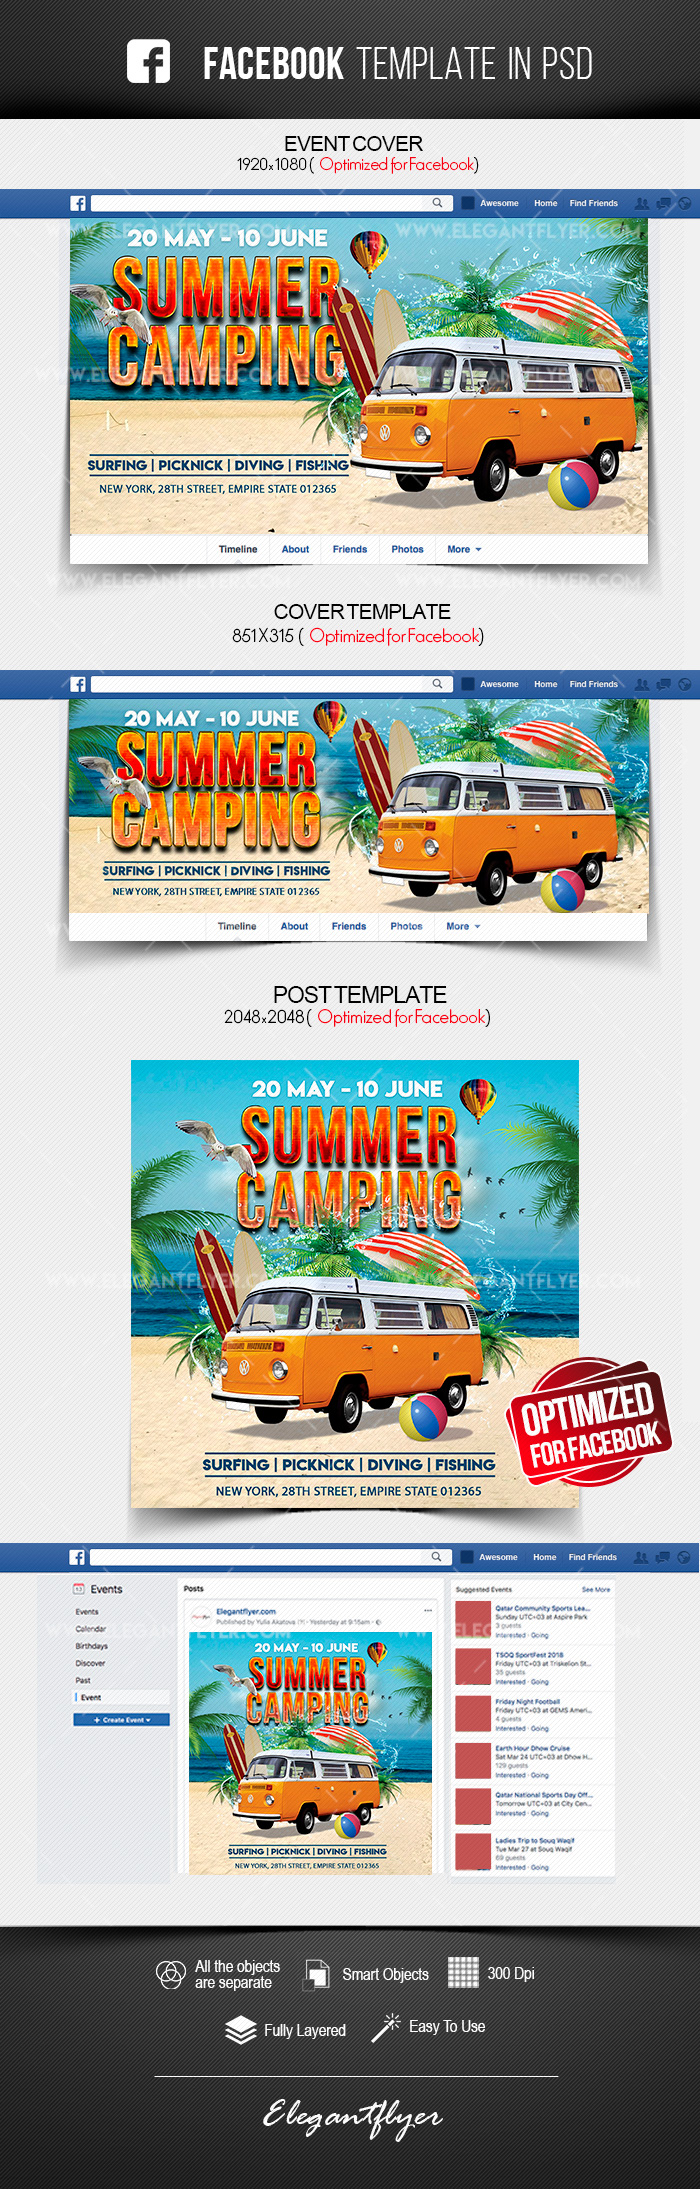 Summer Camping – Free Facebook Cover Template in PSD + Post + Event cover